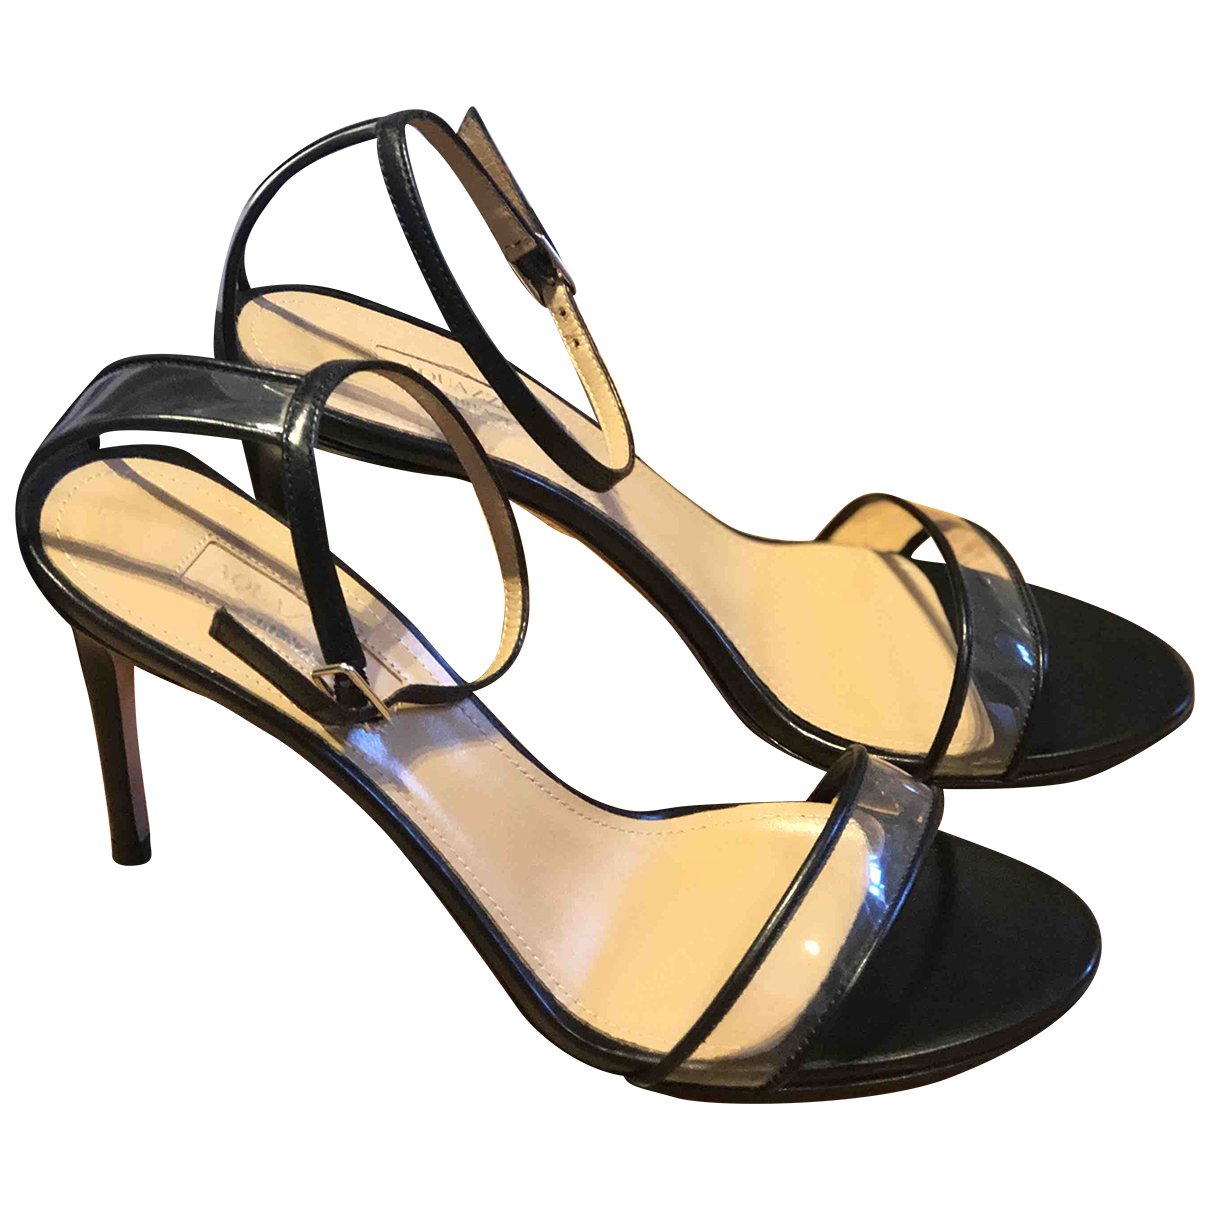 Aquazzura \N Black Leather Sandals for Women 37 EU